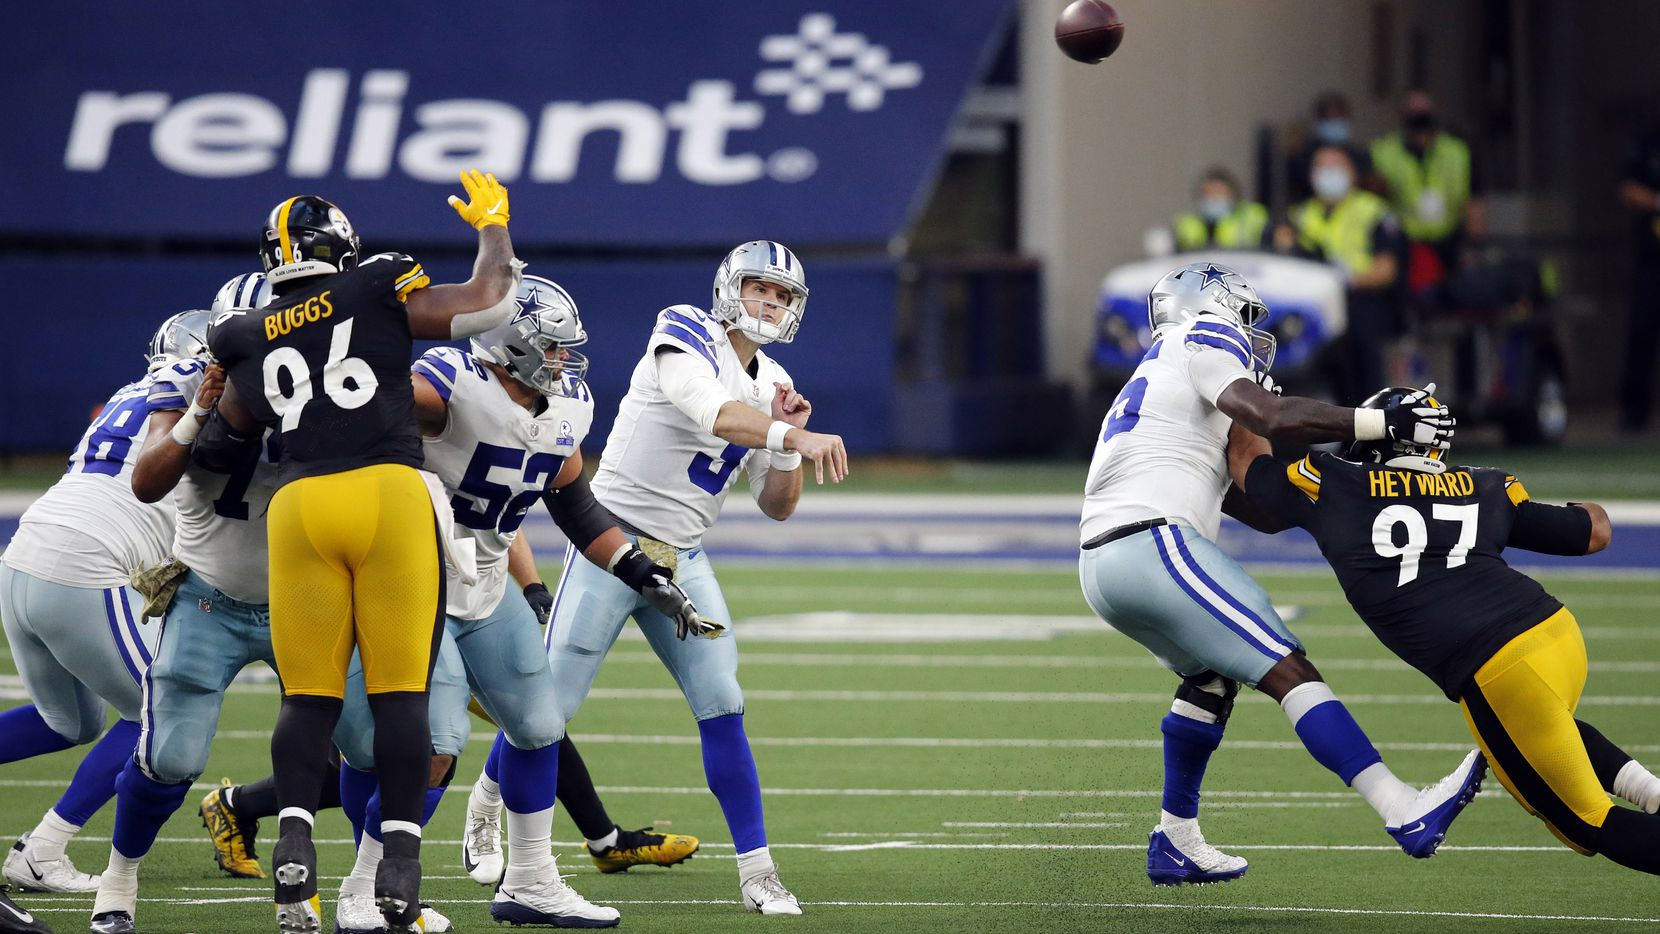 Dallas Cowboys quarterback Garrett Gilbert (3) throws a third quarter pass against the Pittsburgh Steelers defense at AT&T Stadium in Arlington, Texas Sunday, November 8, 2020.